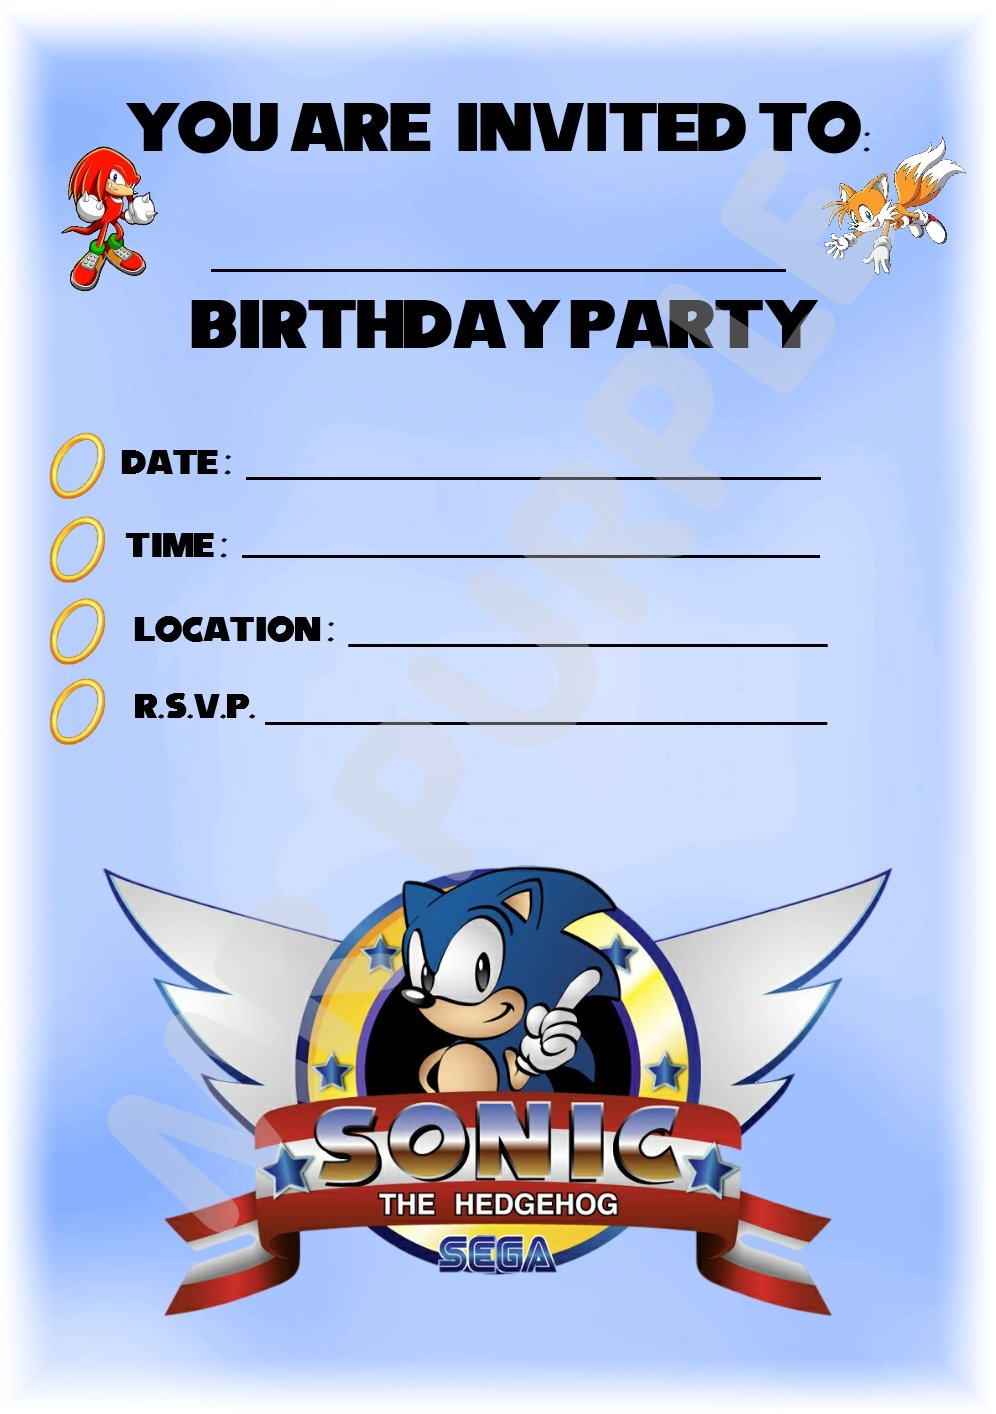 Sonic The Hedgehog Birthday Party Invite Buy Online In Suriname At Desertcart